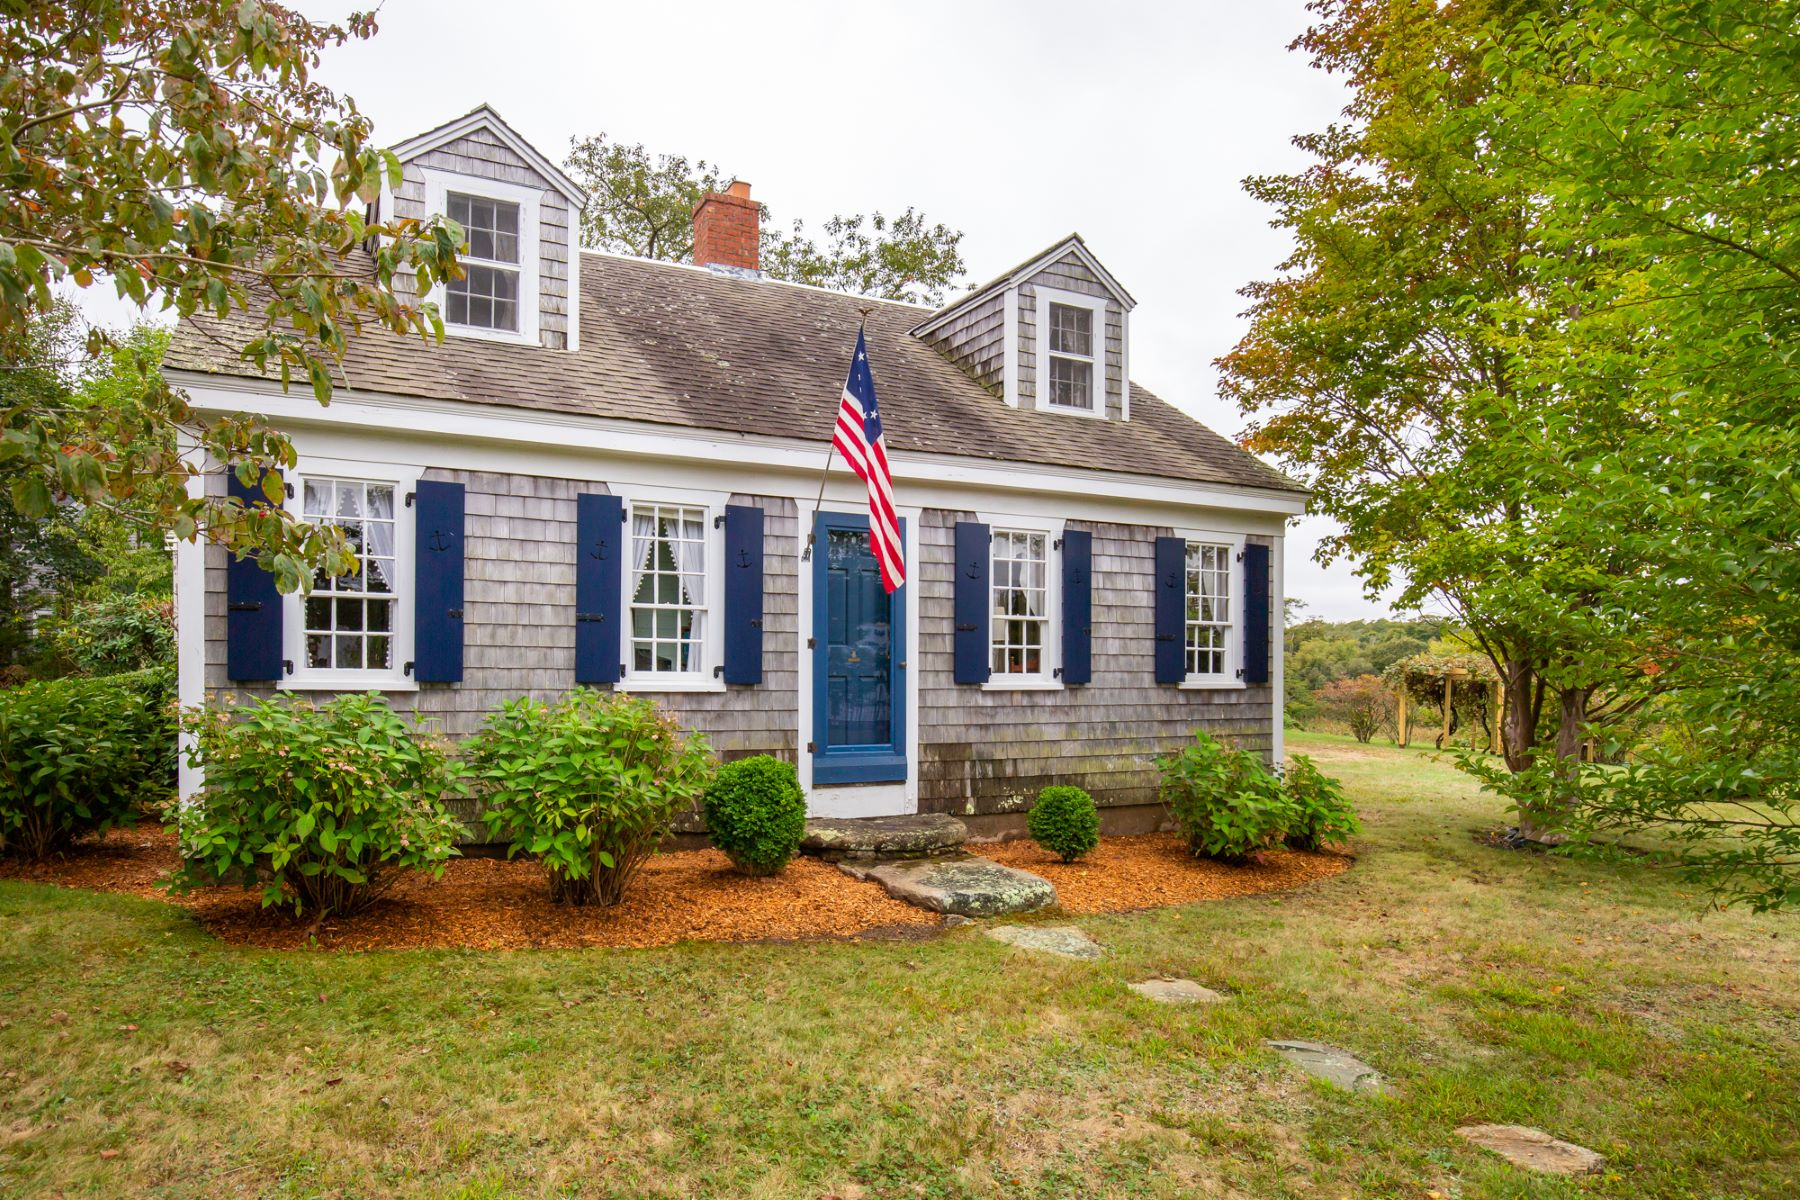 Single Family Homes for Active at Charming Cottage in West Tisbury 703 Old County Road West Tisbury, Massachusetts 02575 United States